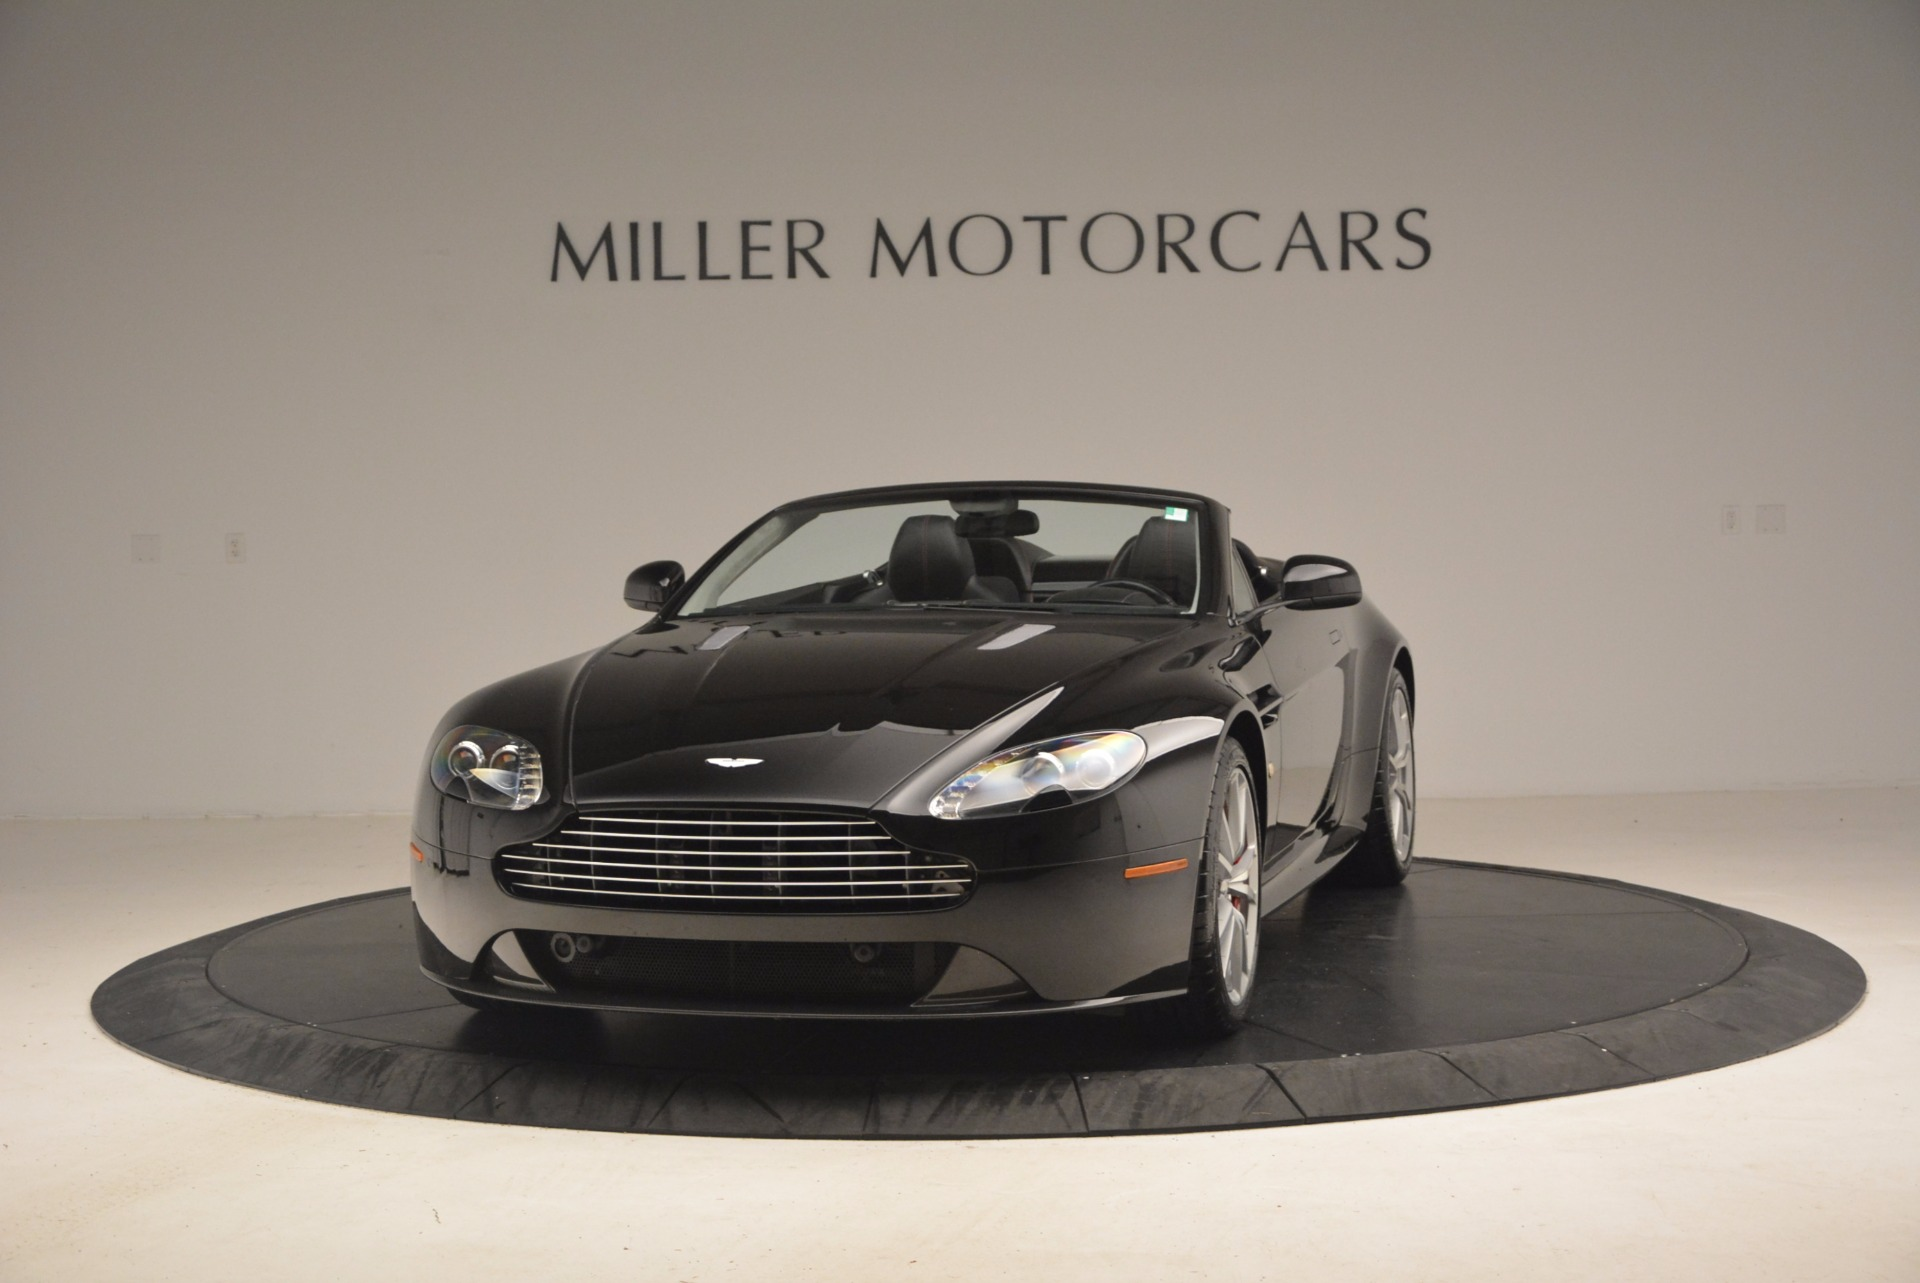 Used 2012 Aston Martin V8 Vantage S Roadster for sale Sold at Bugatti of Greenwich in Greenwich CT 06830 1